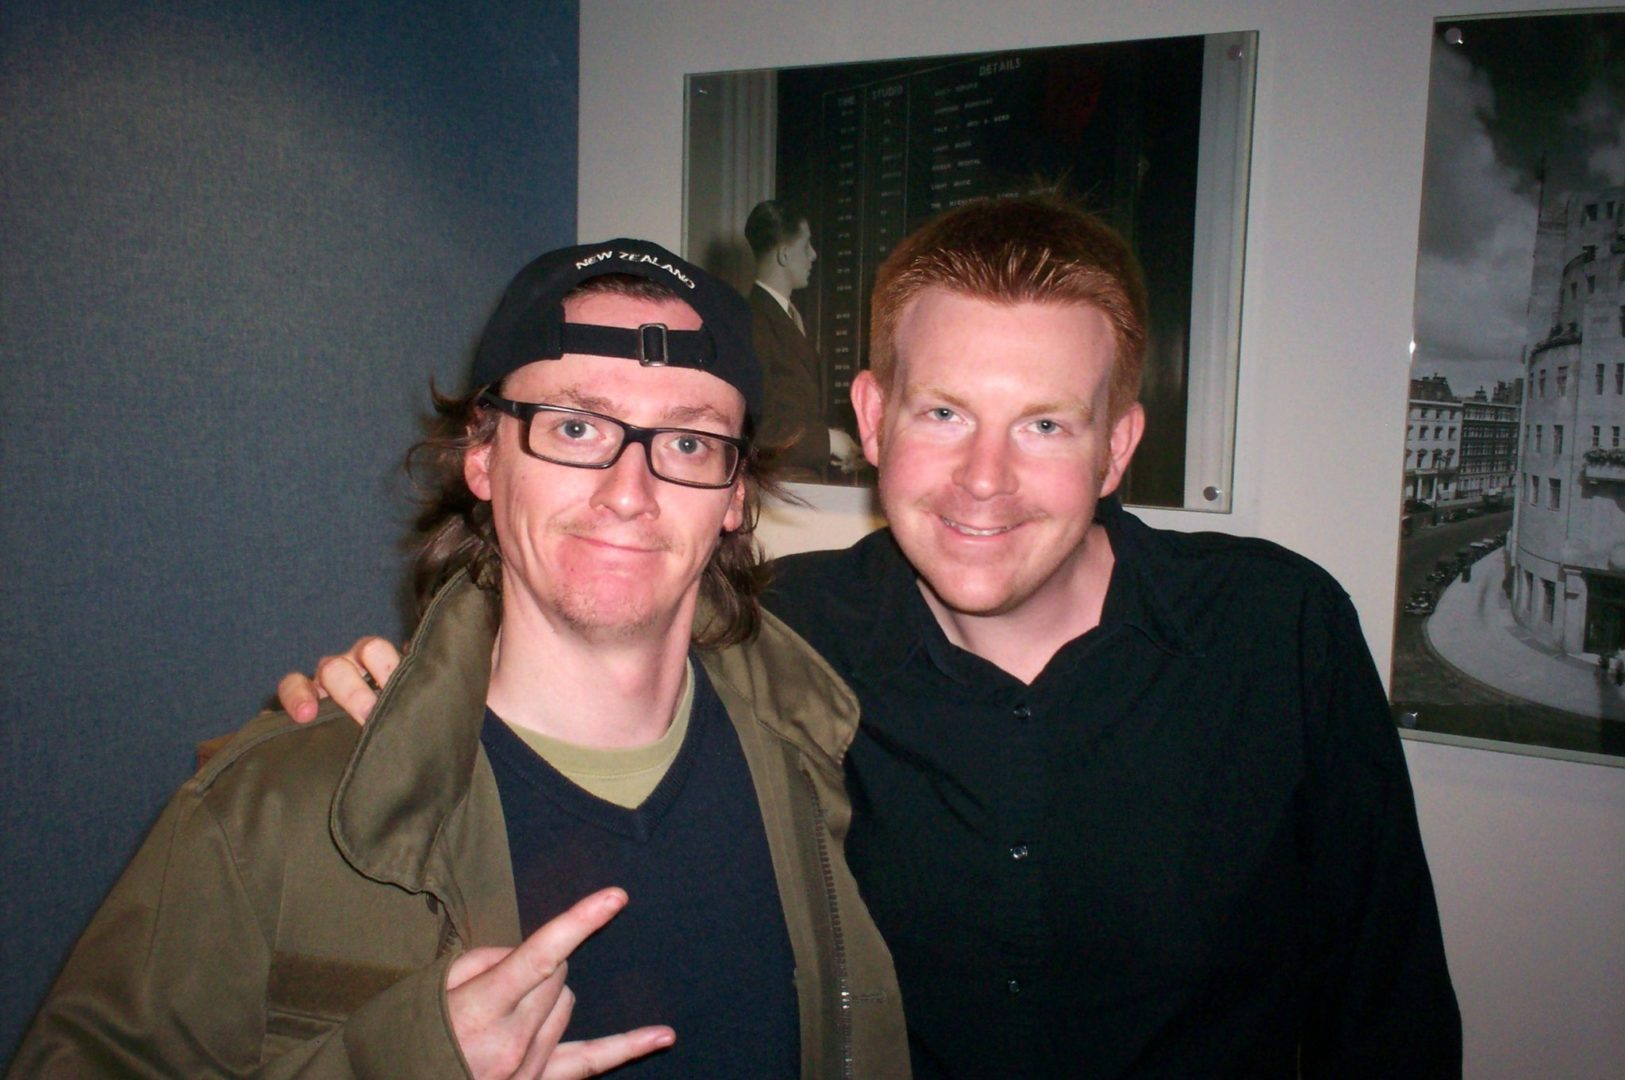 Enjoy Celebrity Radio's Comedian Ed Byrne Interview…. Ed Byrne is an Irish stand-up comedian, voice over artist and actor. He has presented television shows Uncut! […]